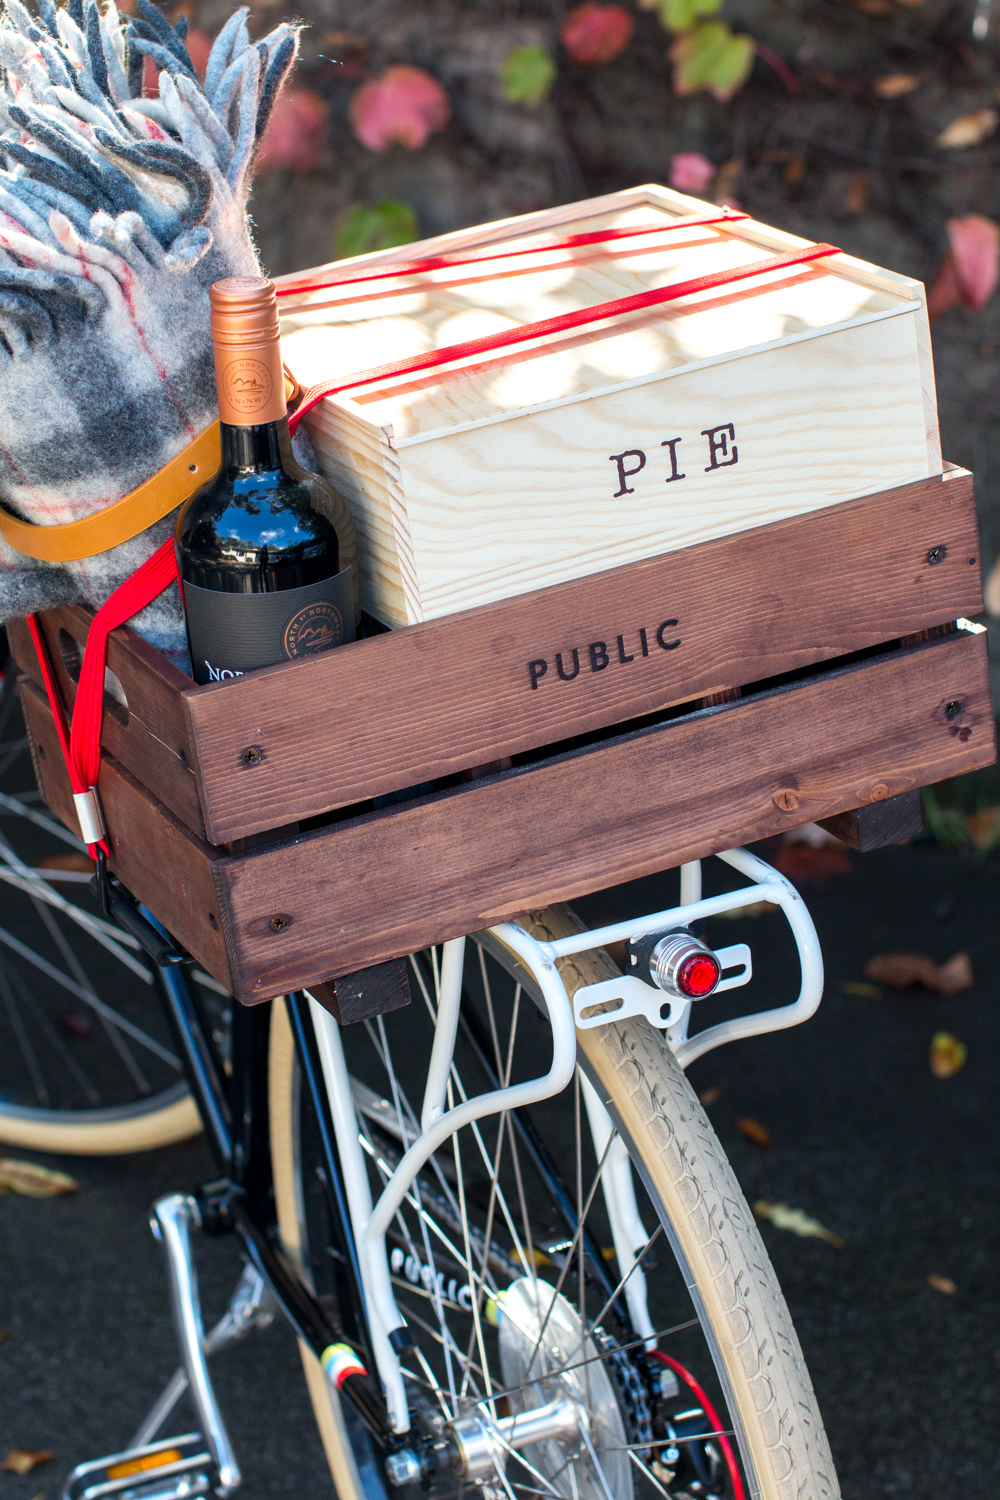 PUBLIC Wooden Bicycle Crate filled